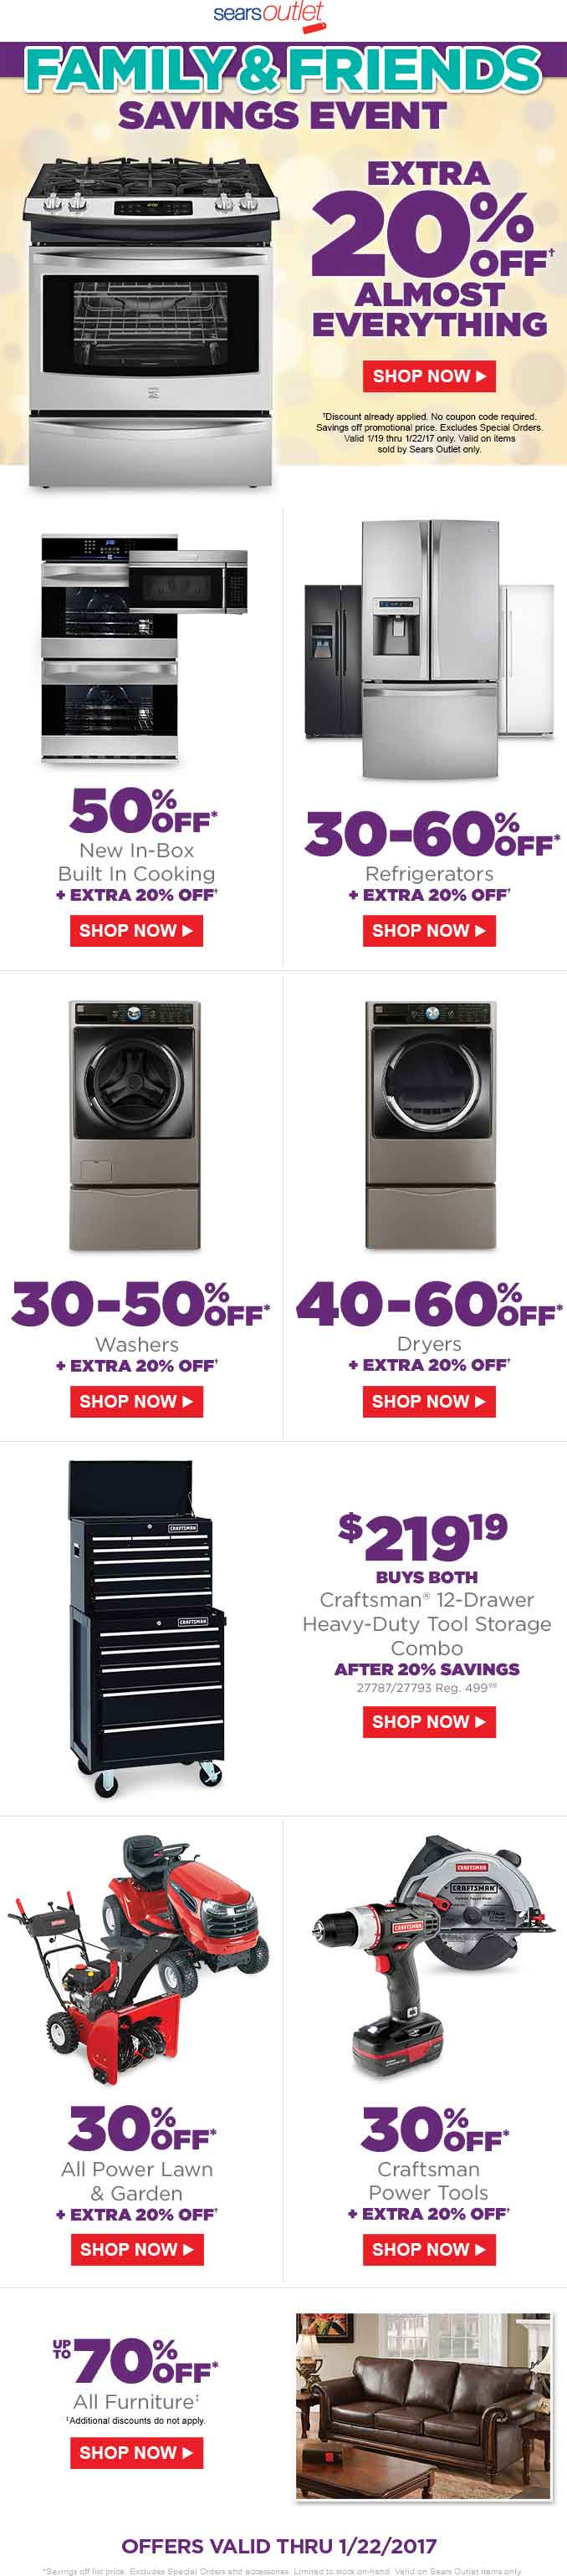 SearsOutlet.com Promo Coupon Extra 20% off today at Sears Outlet